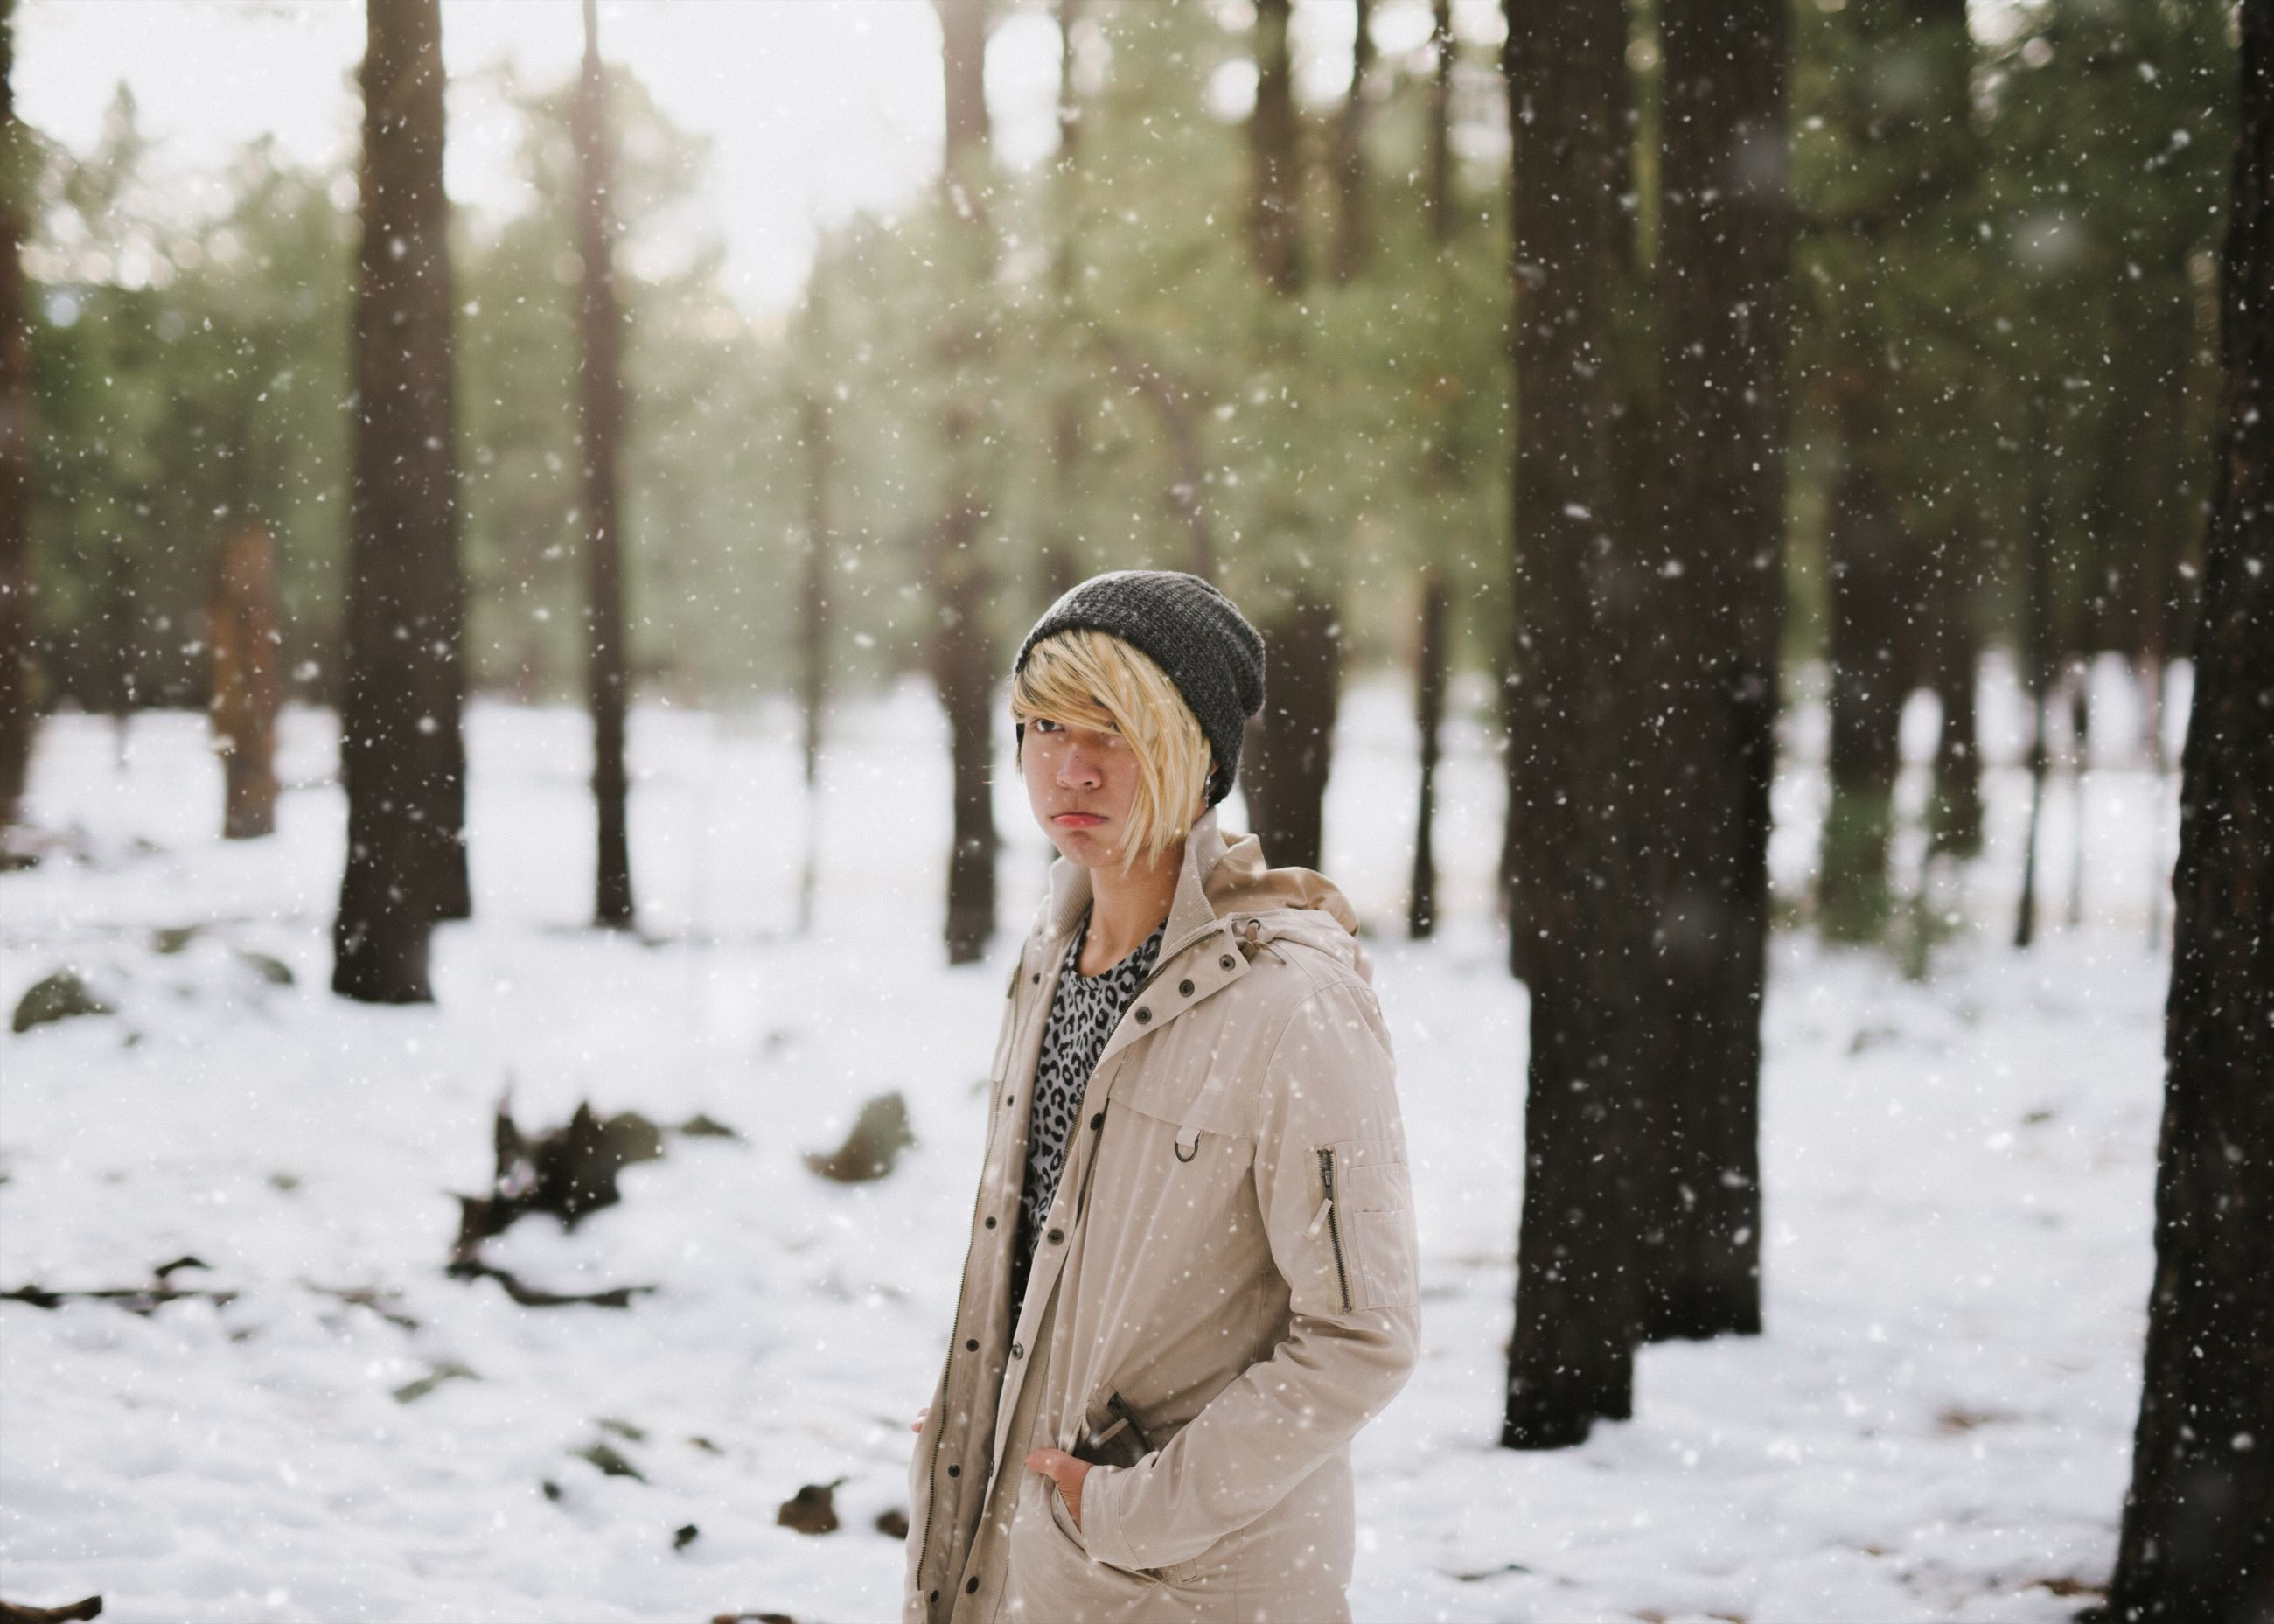 winter, cold temperature, snow, waist up, one woman only, snowing, adults only, only women, one person, warm clothing, outdoors, people, adult, snowflake, day, tree, smiling, human body part